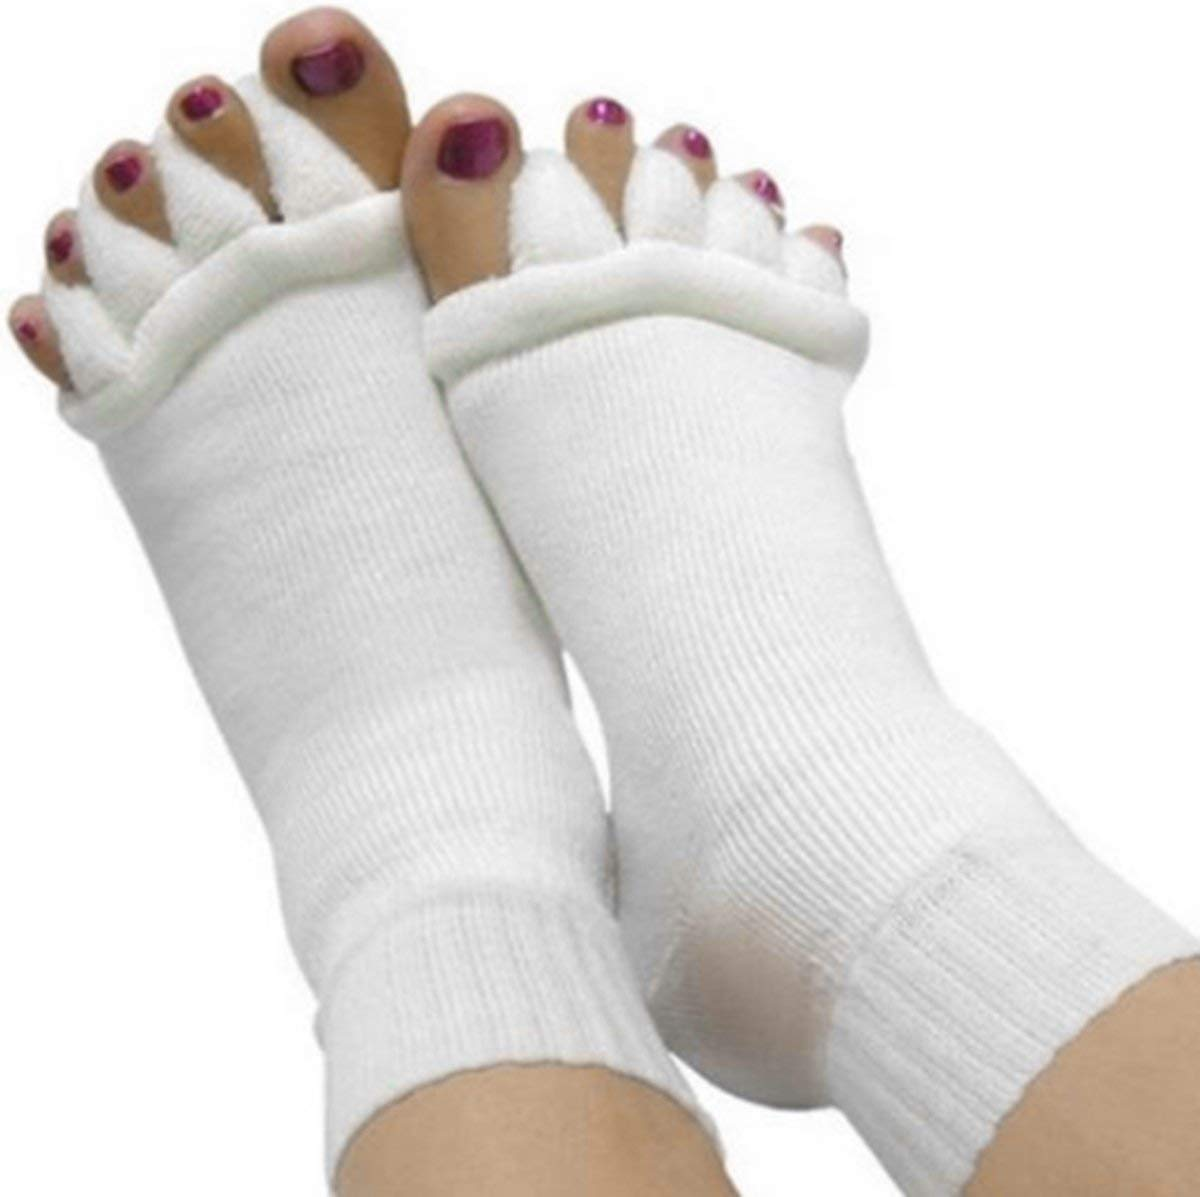 961839d0293 Get Quotations · Moja Sports Toes Alignment Socks Open Five Toe Separator  Spacer Relaxing Comfort Tendon Pain Relief Comfy